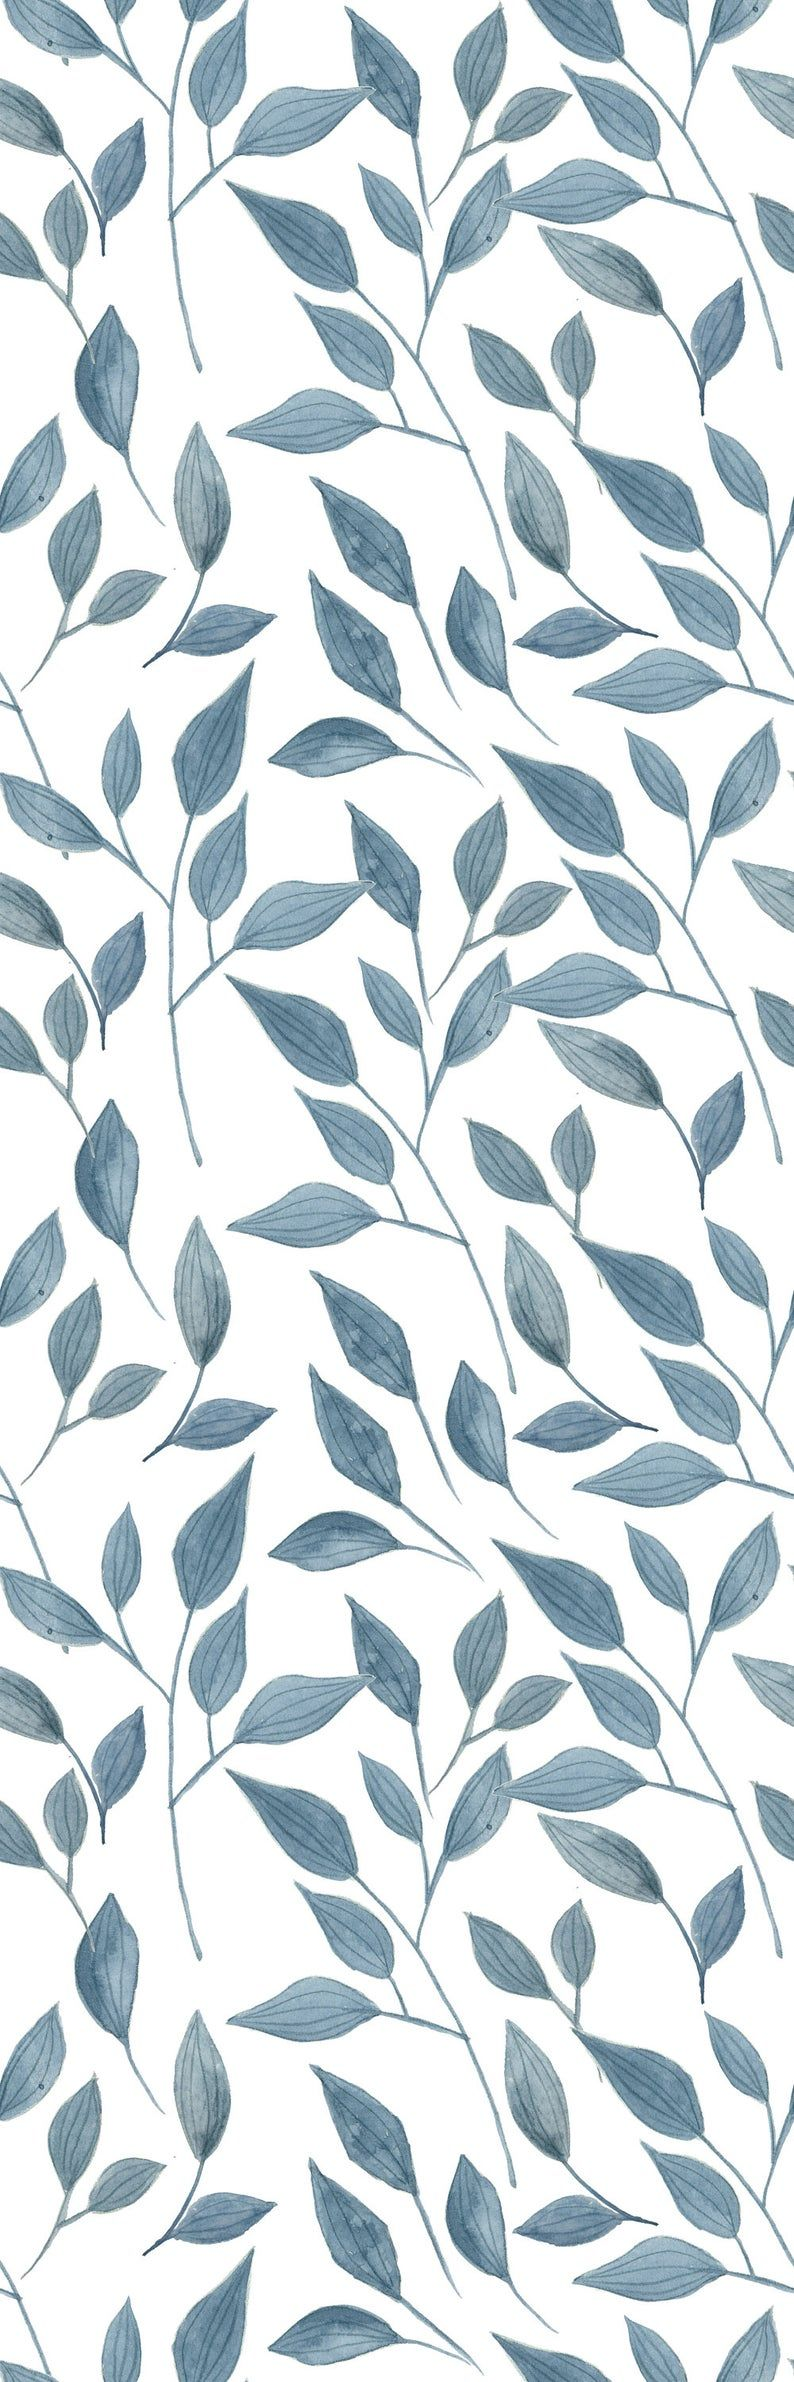 Removable Wallpaper Self Adhesive Wallpaper Handdrawn Blue Leaves Peel & Stick Wallpaper